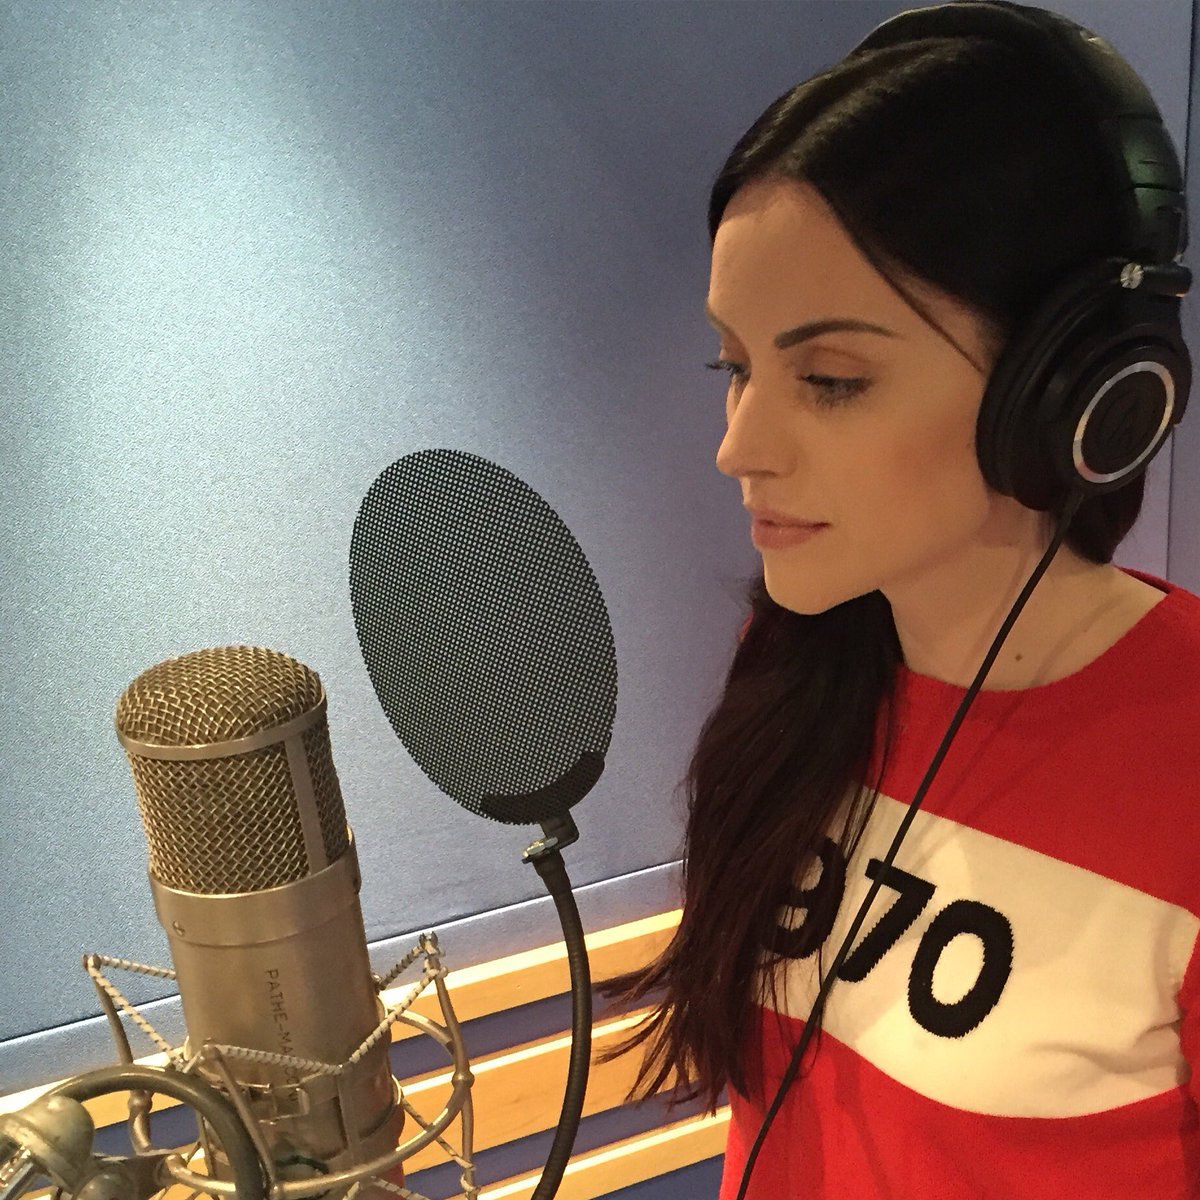 Spending the day with uber talented @Amy__Macdonald at @AbbeyRoad today #amymacdonald